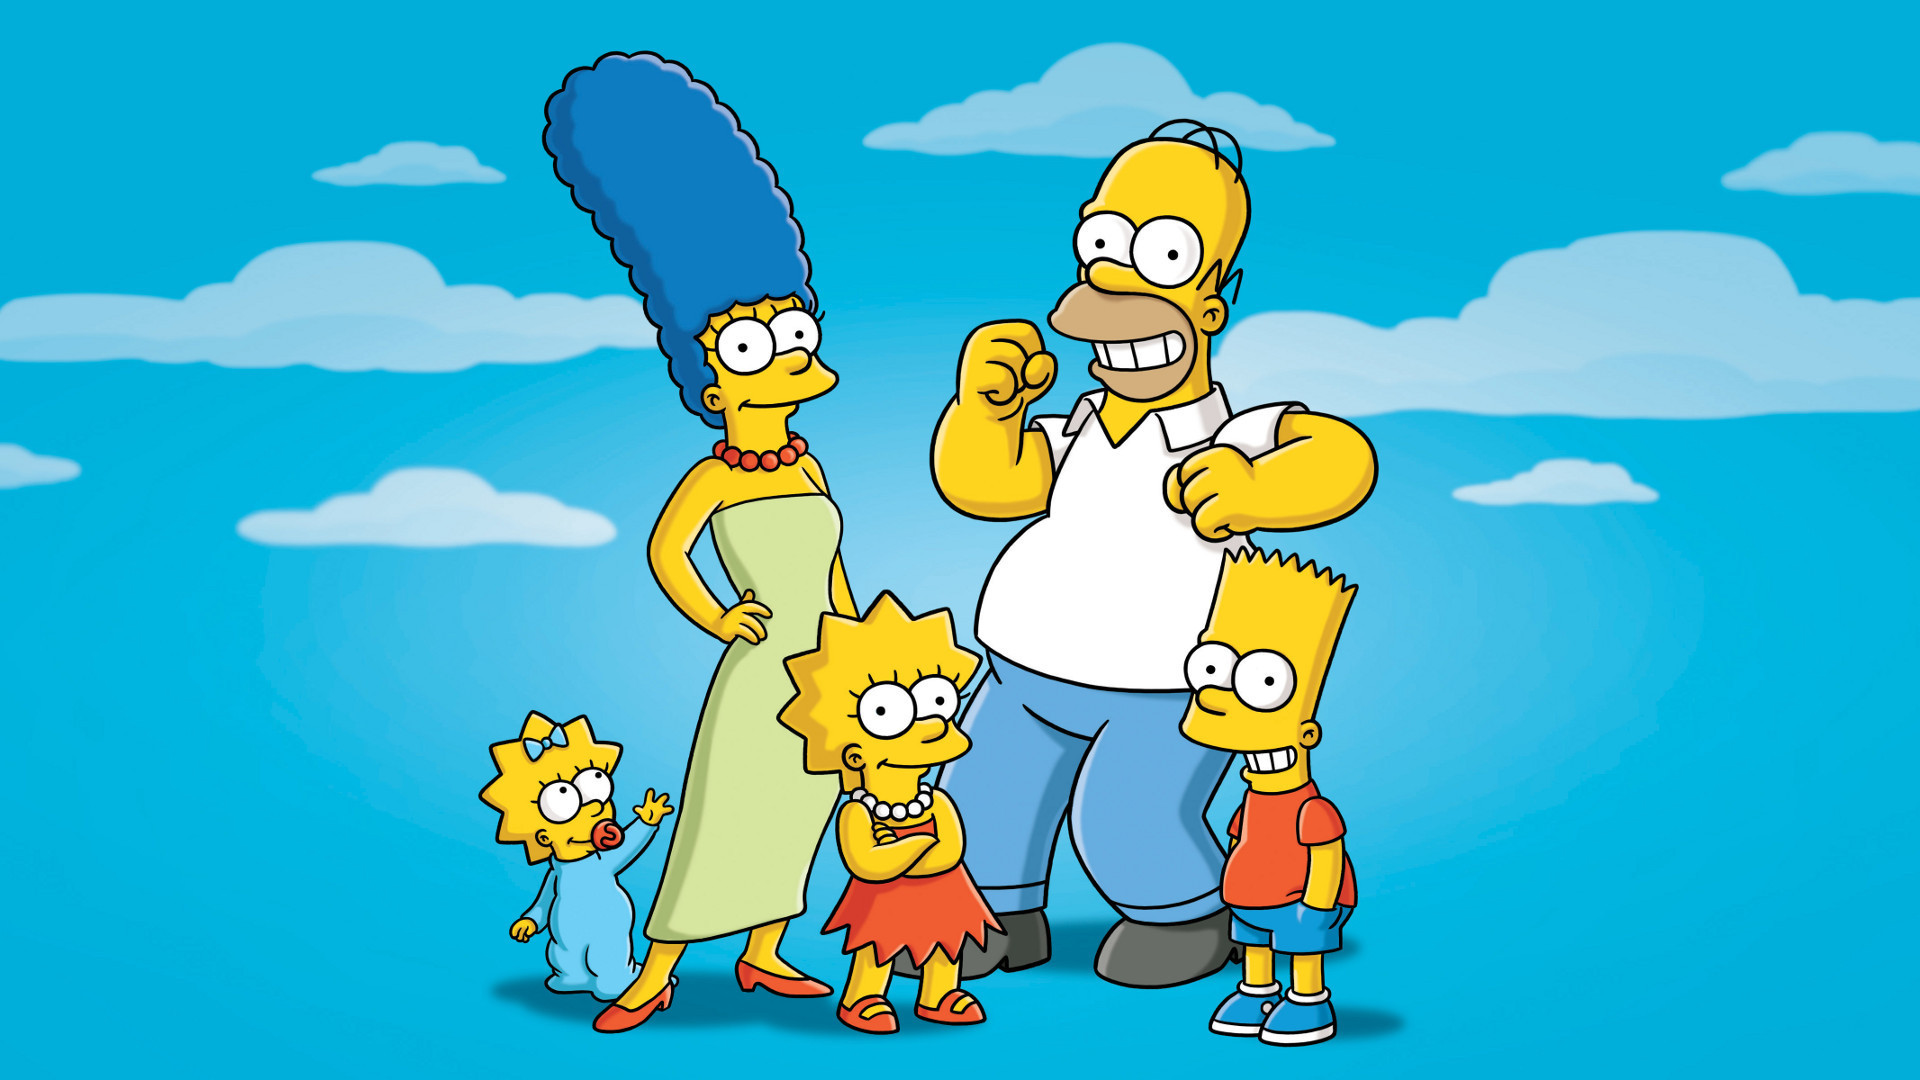 49 The Simpsons Wallpaper For Desktop On Wallpapersafari